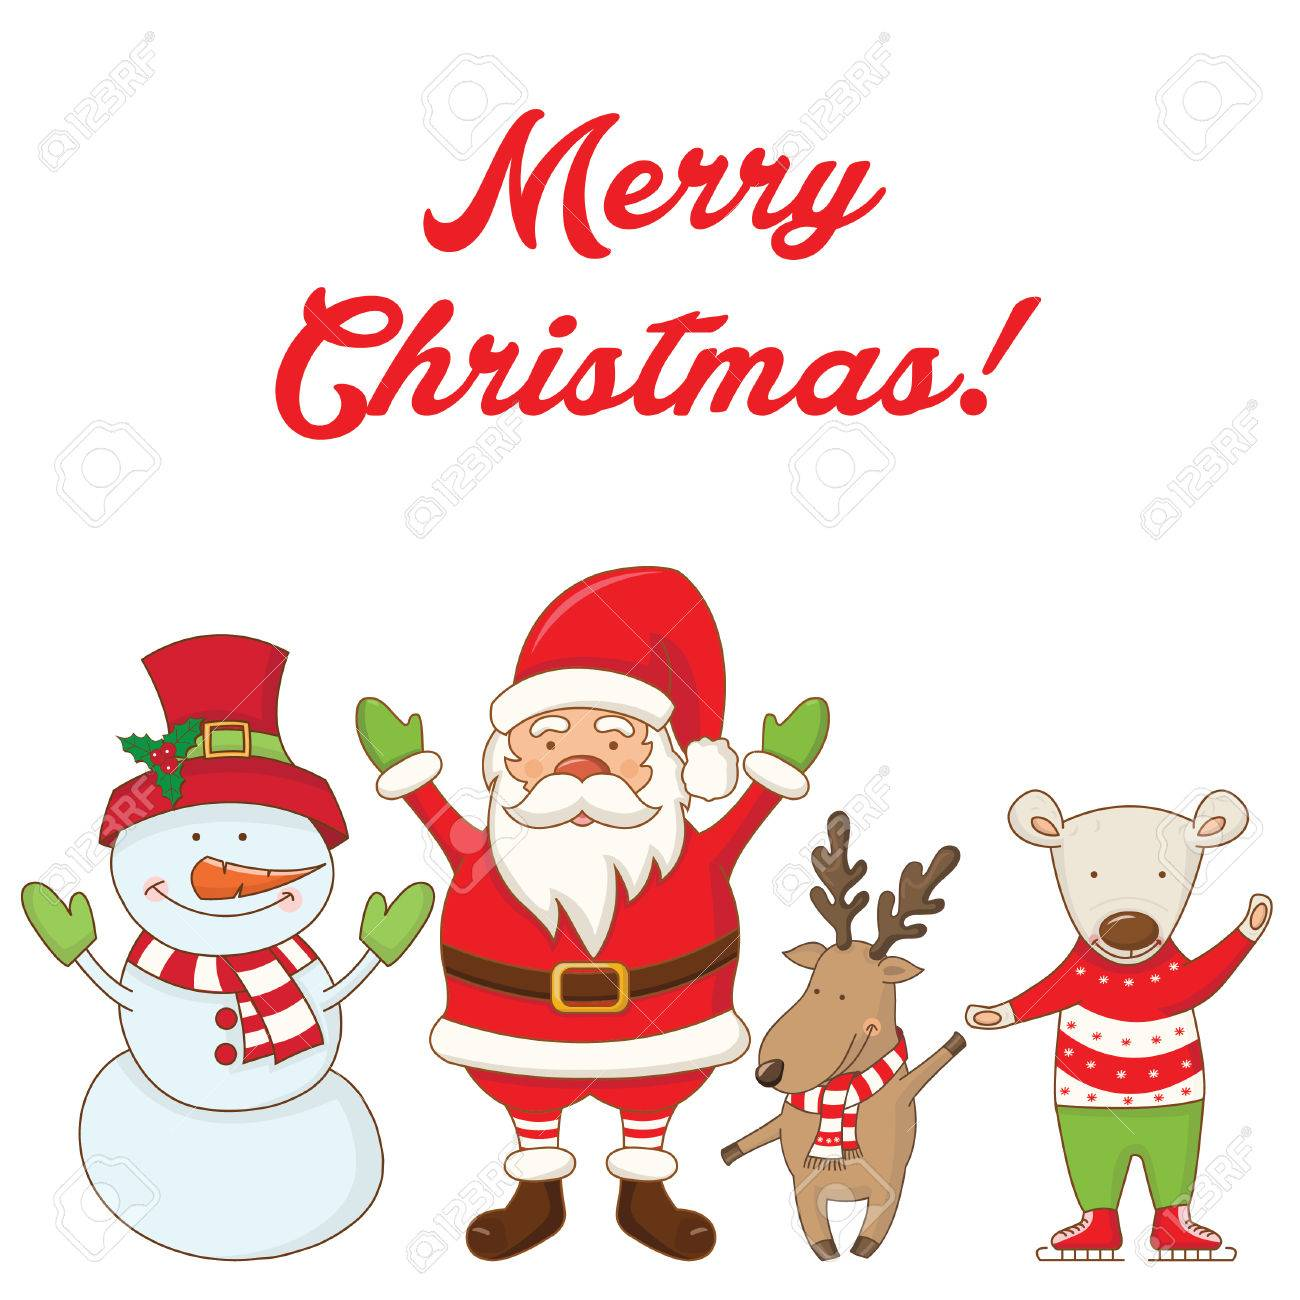 Christmas Characters And The Words Merry Christmas .Vector Royalty ...